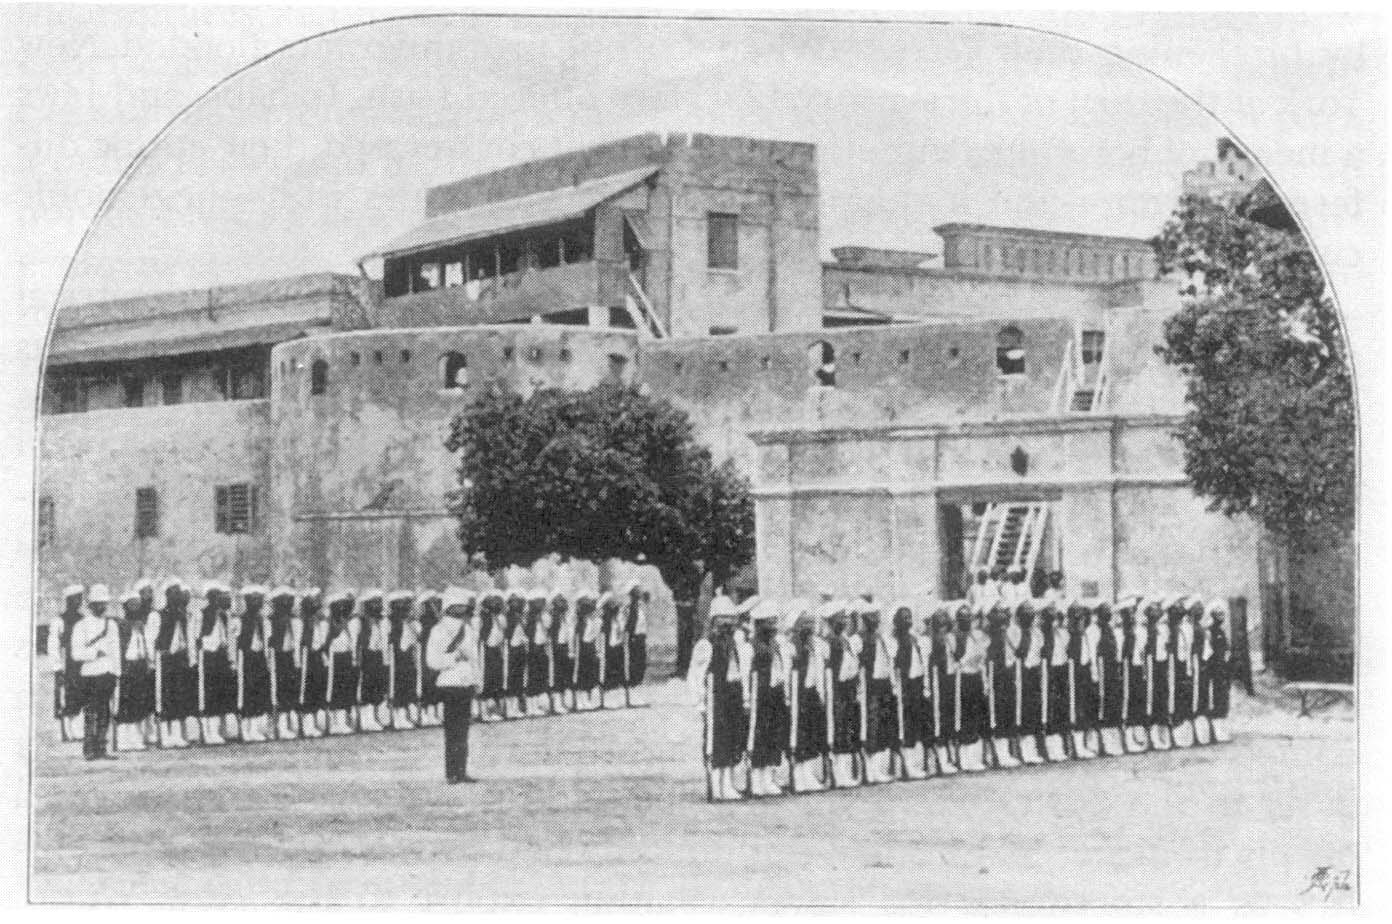 West Indians soldiers at Cape Coast Castle in the 1890s